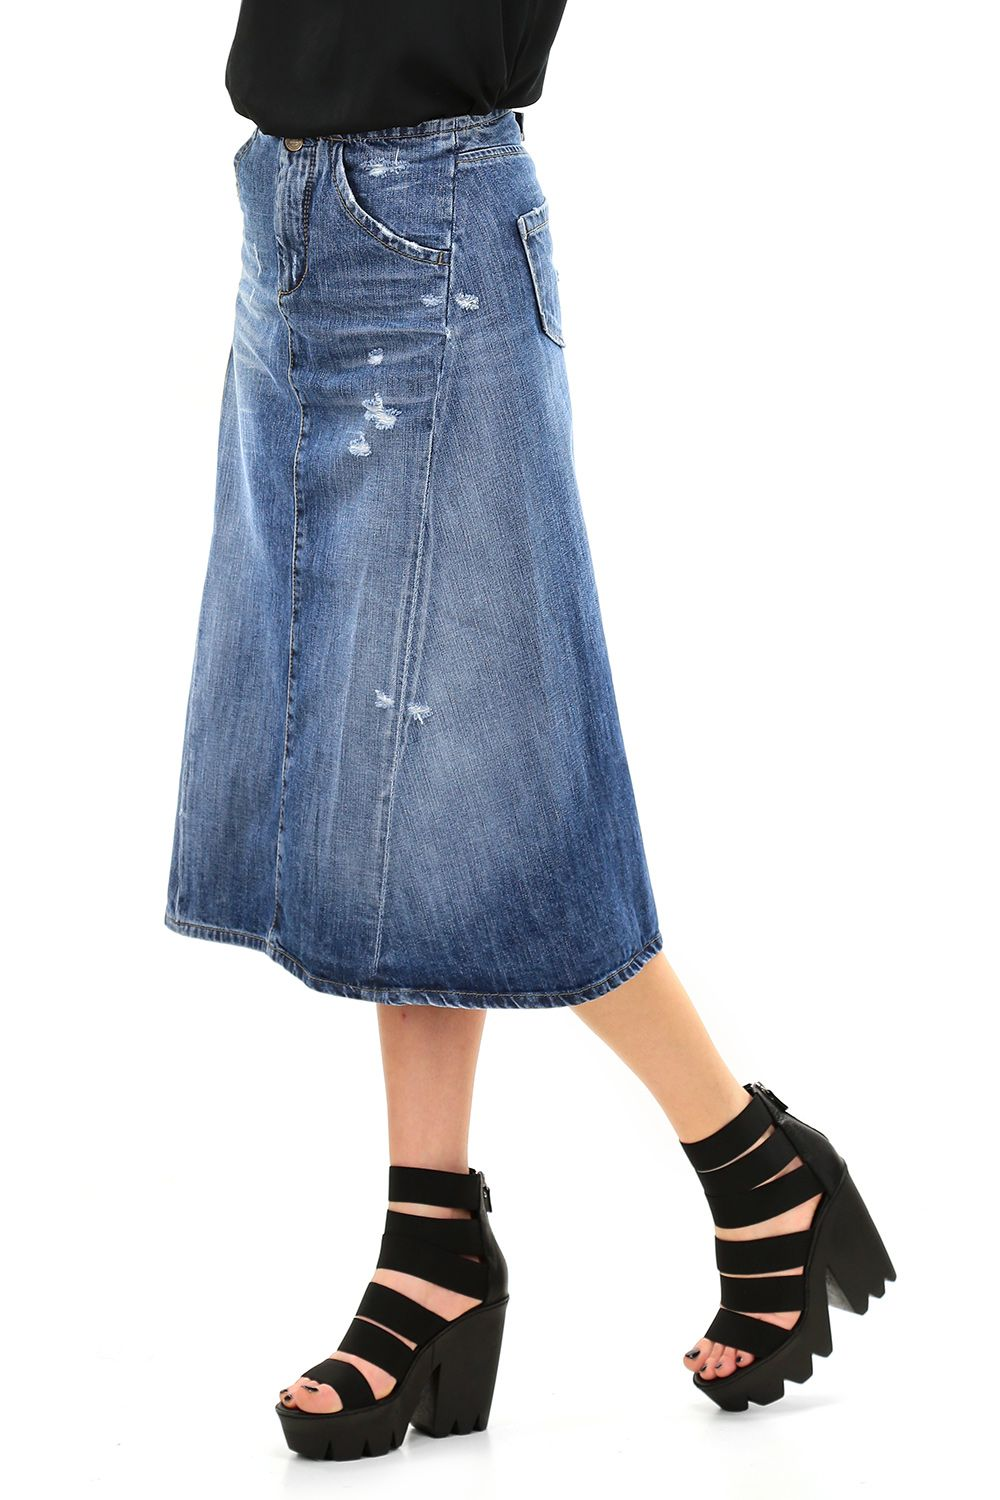 negozio online 0321d 079c1 Gonna Blue Liu.jo | Liu Jo Clothing SS16 | Denim skirt, Blue ...